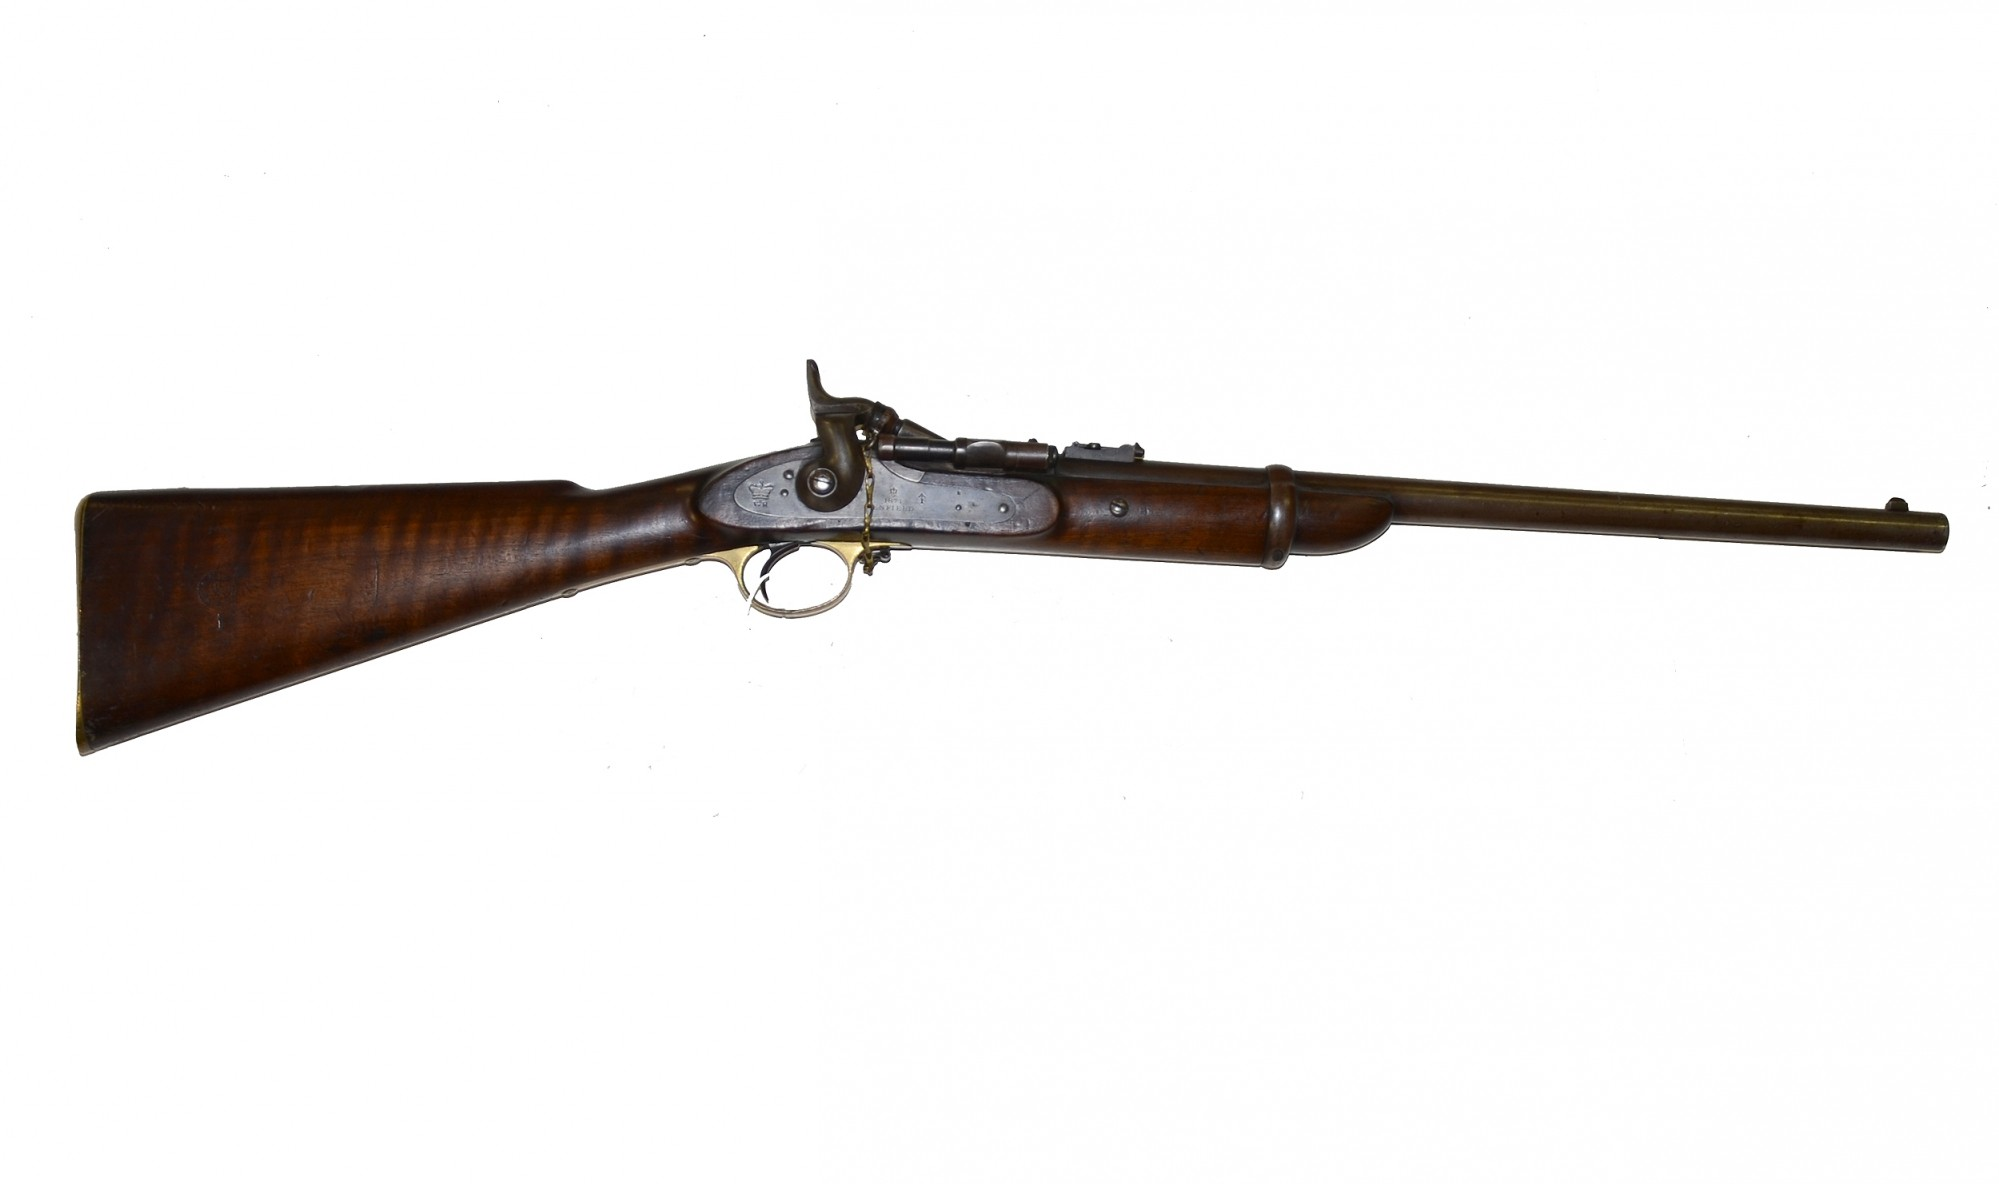 ENFIELD PATTERN 61 CARBINE- SNIDER CONVERSION